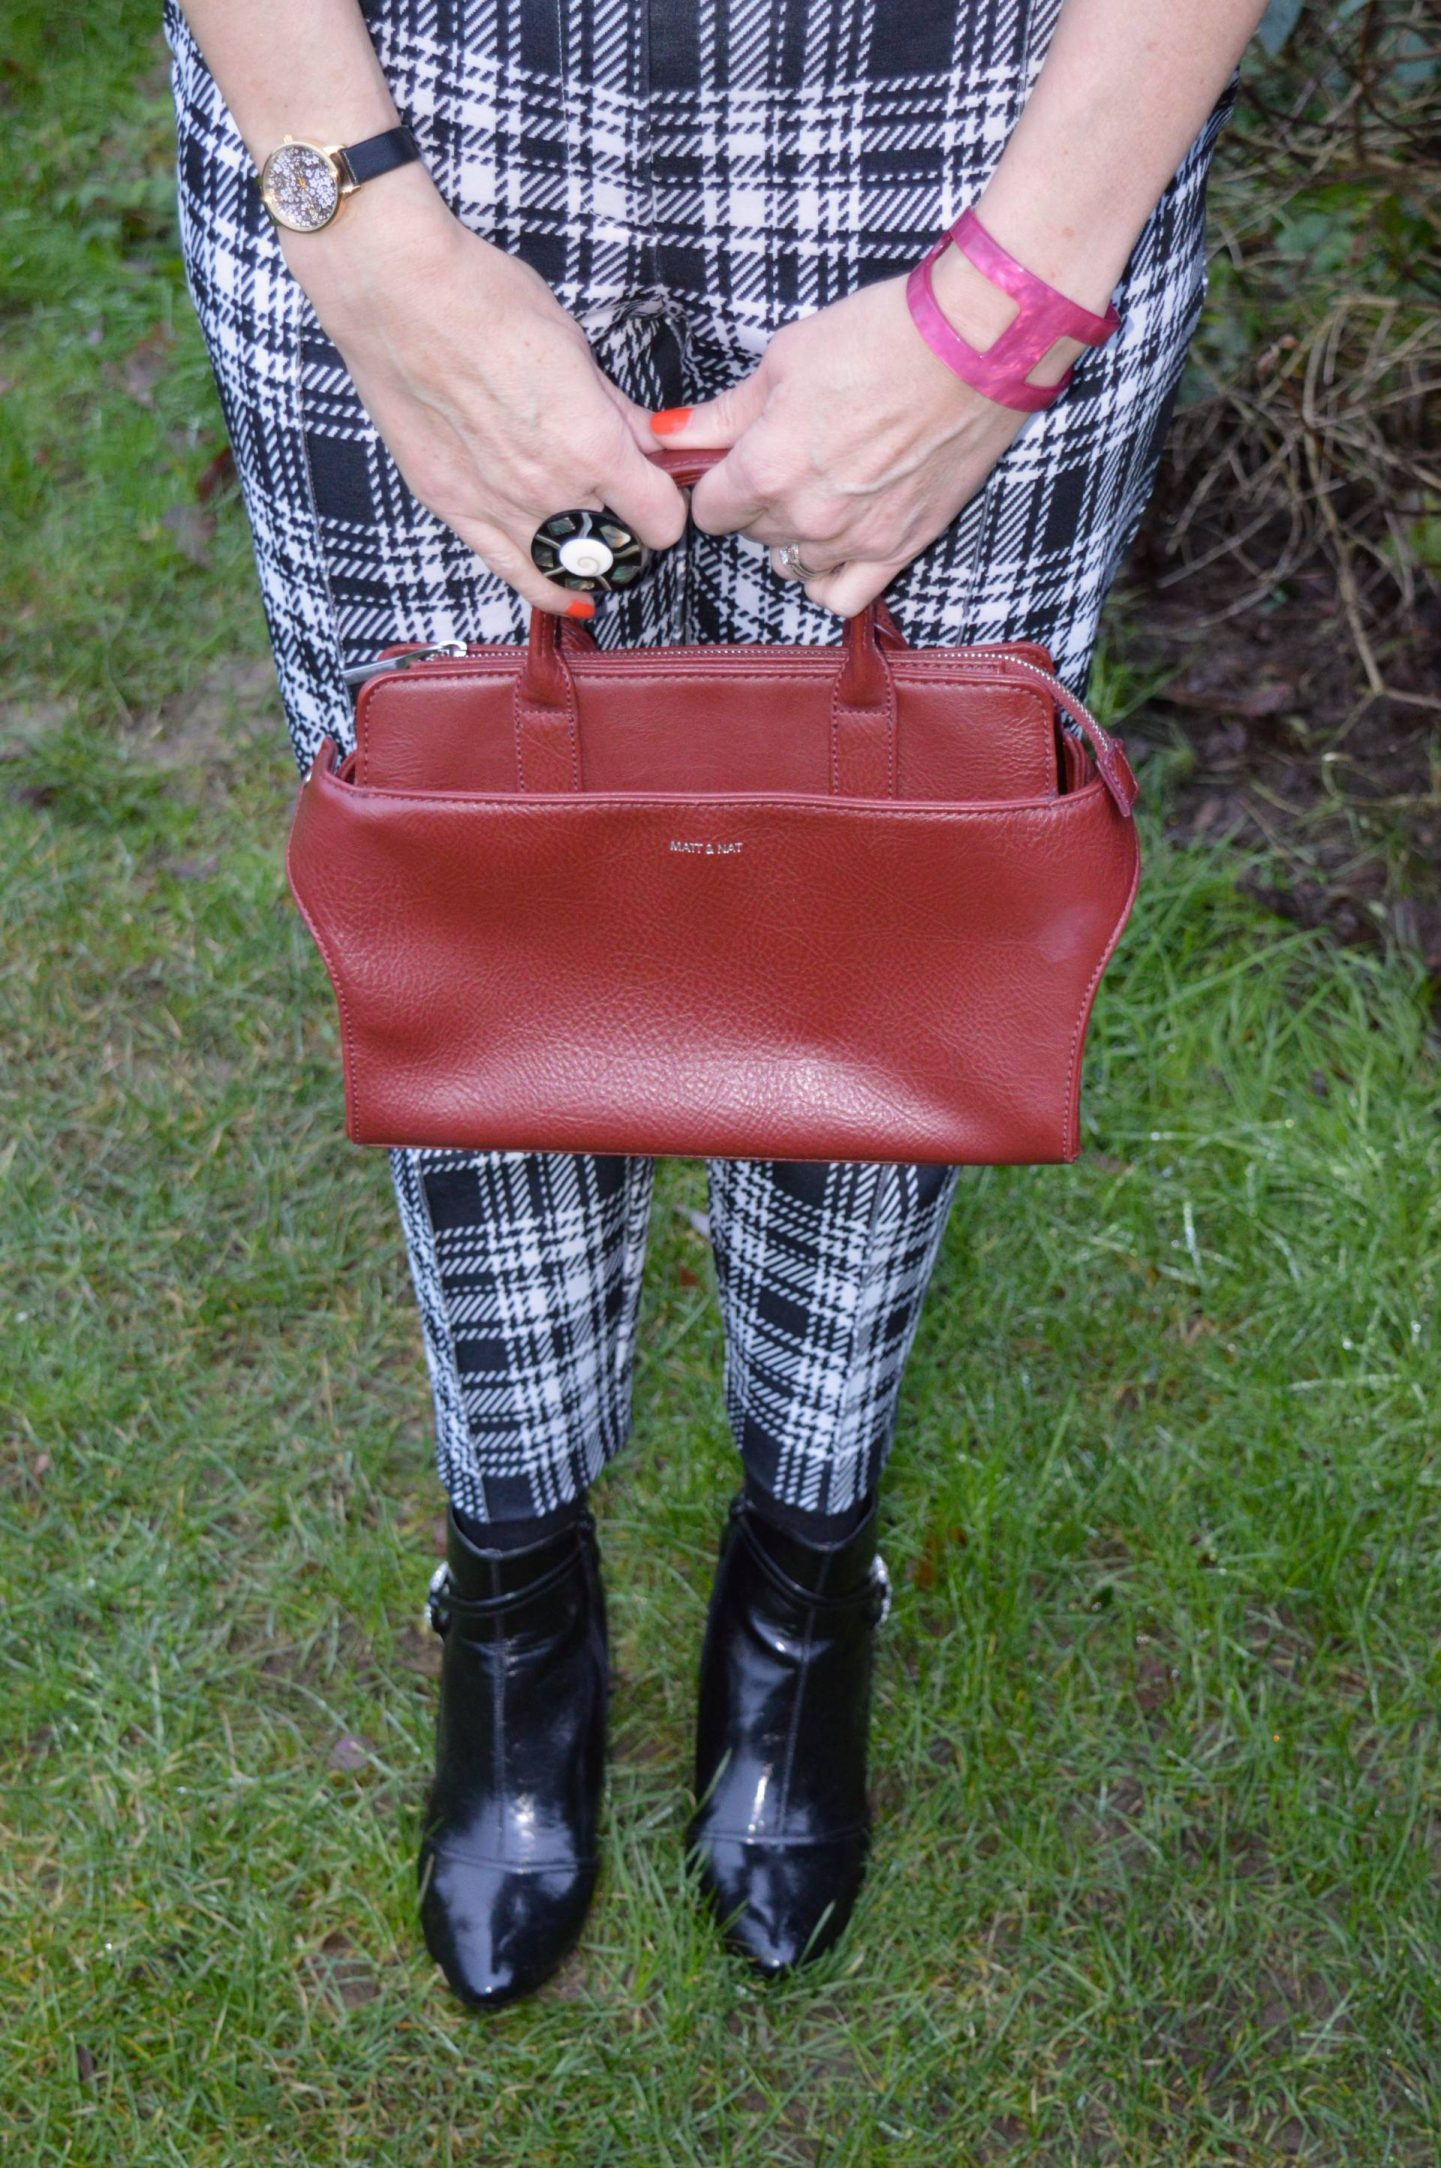 Styling Leather and Pleather - January's Thrifty Six Collaboration, Matt and Nat maroon bag, River Island black and white check trousers, Lotus black ankle boots